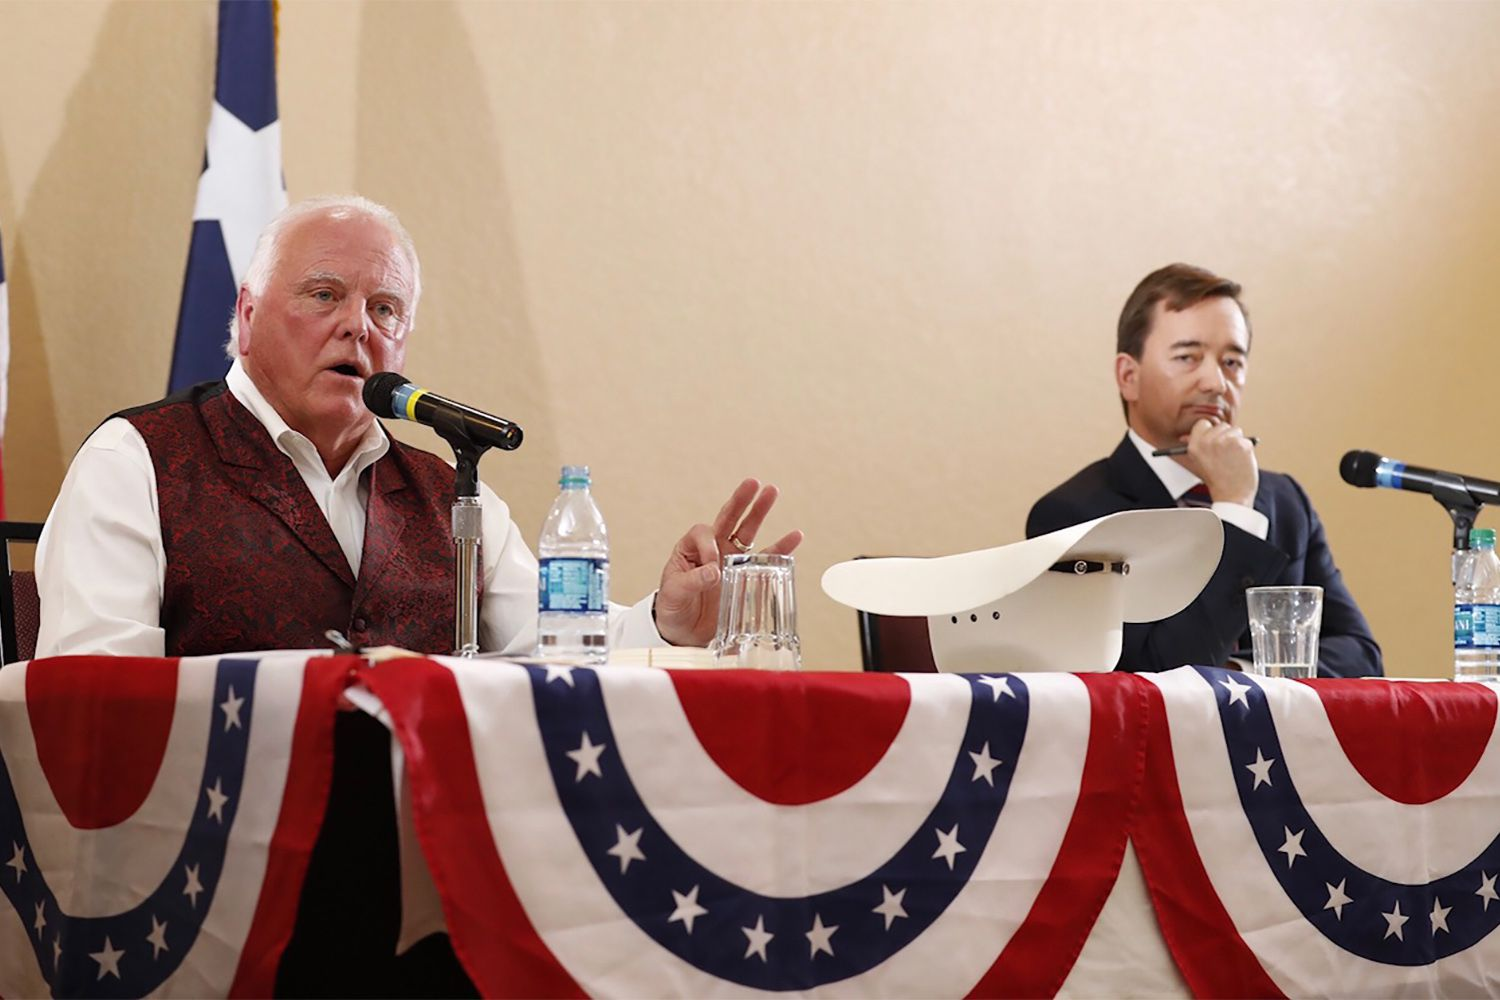 Texas Agriculture Commissioner Sid Miller (left), and Republican primary challenger Trey Blocker at a debate in Tyler on Feb. 7, 2018.